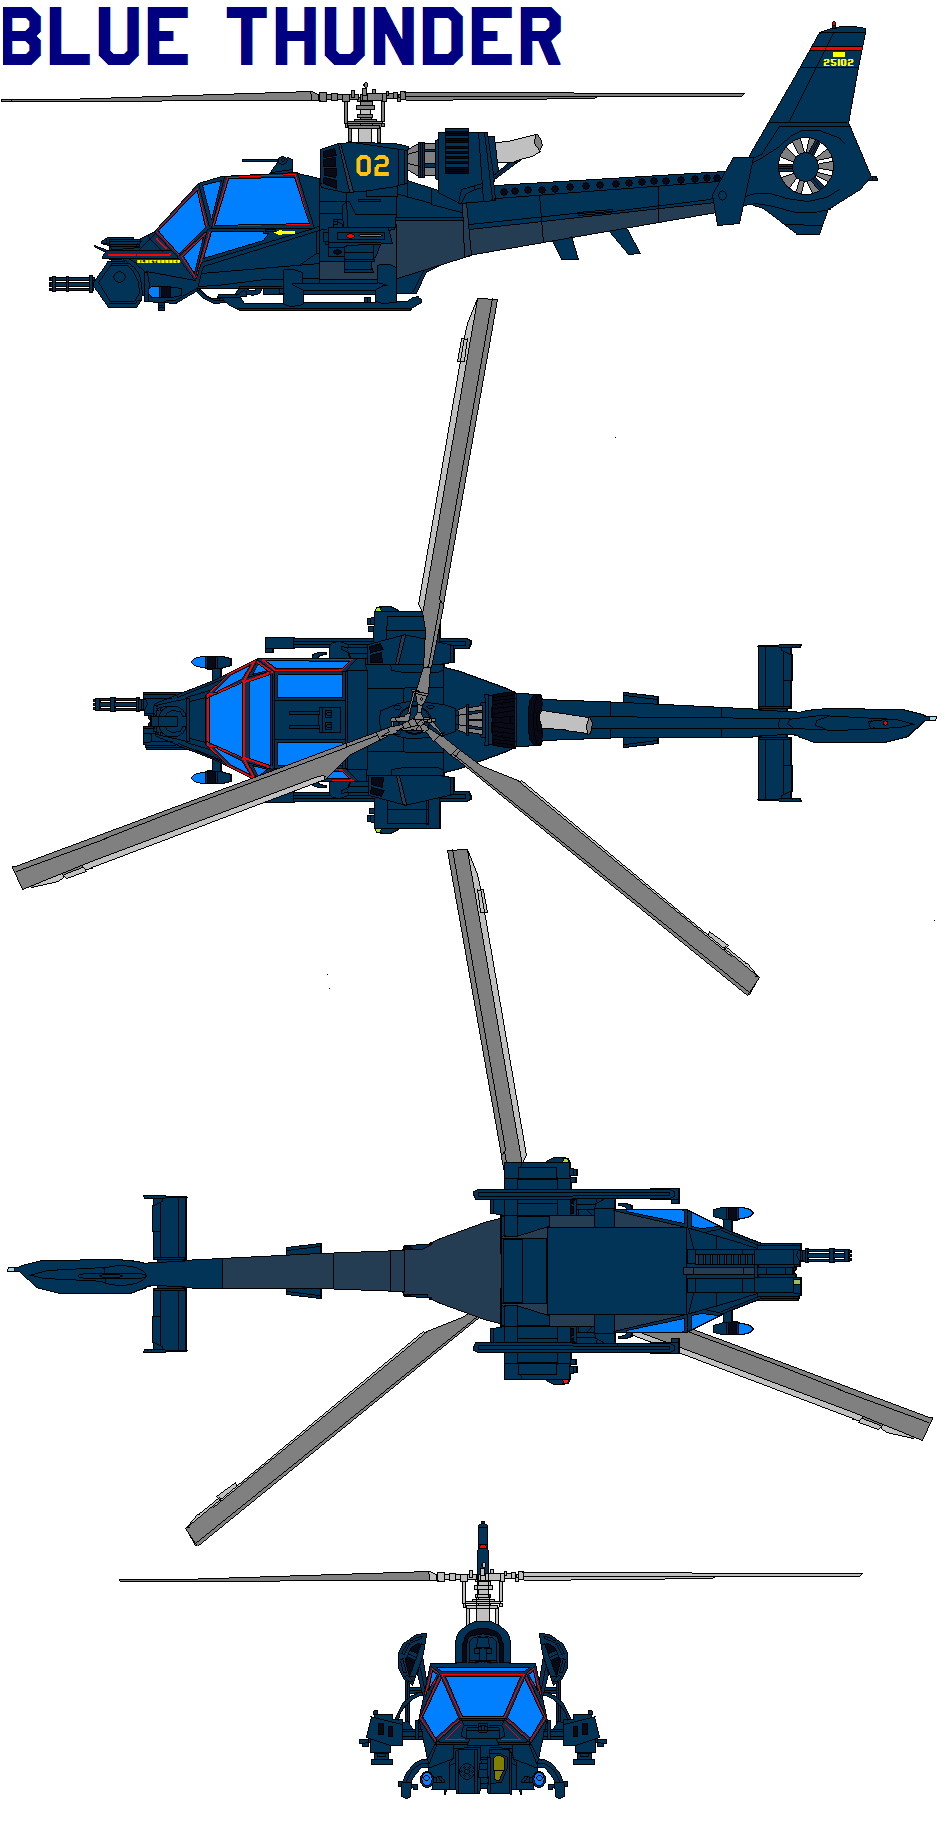 Thunder by bagera3005 on deviantart blue thunder by bagera3005 blue thunder by bagera3005 malvernweather Image collections